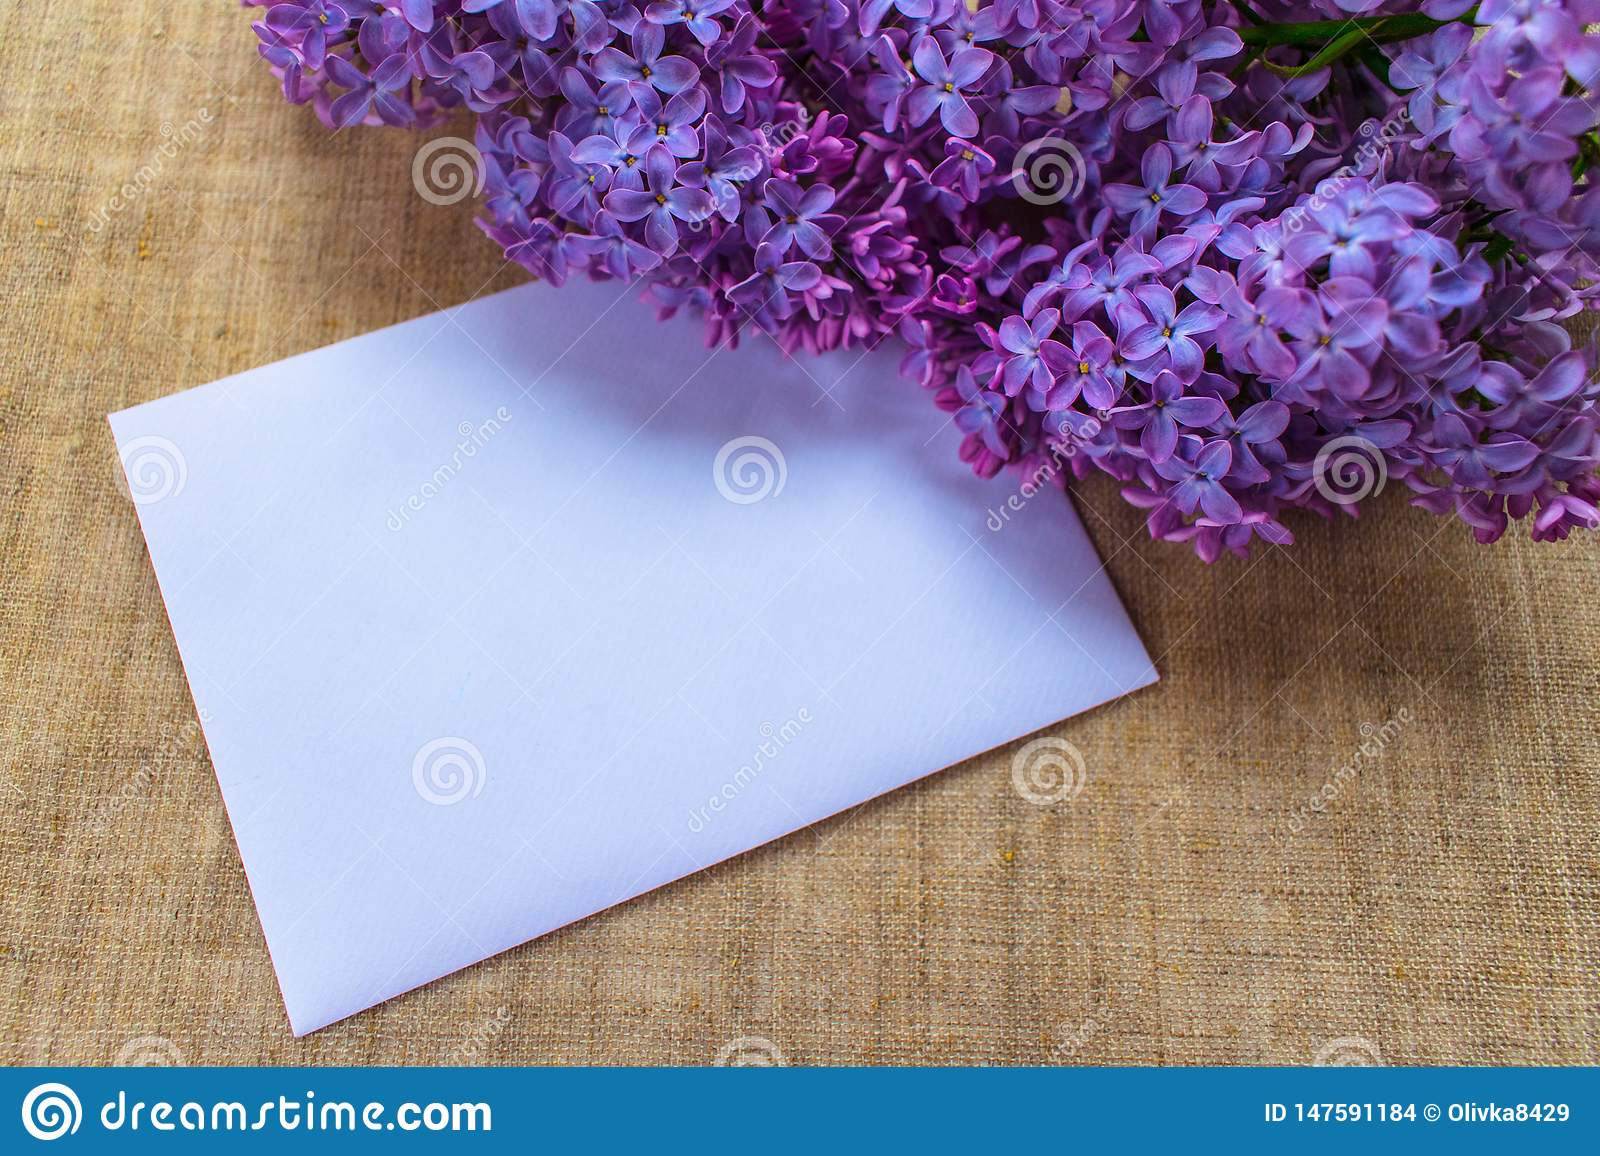 Lilac flowers in a lilac vase and an envelope with a place for an inscription. Postcard.